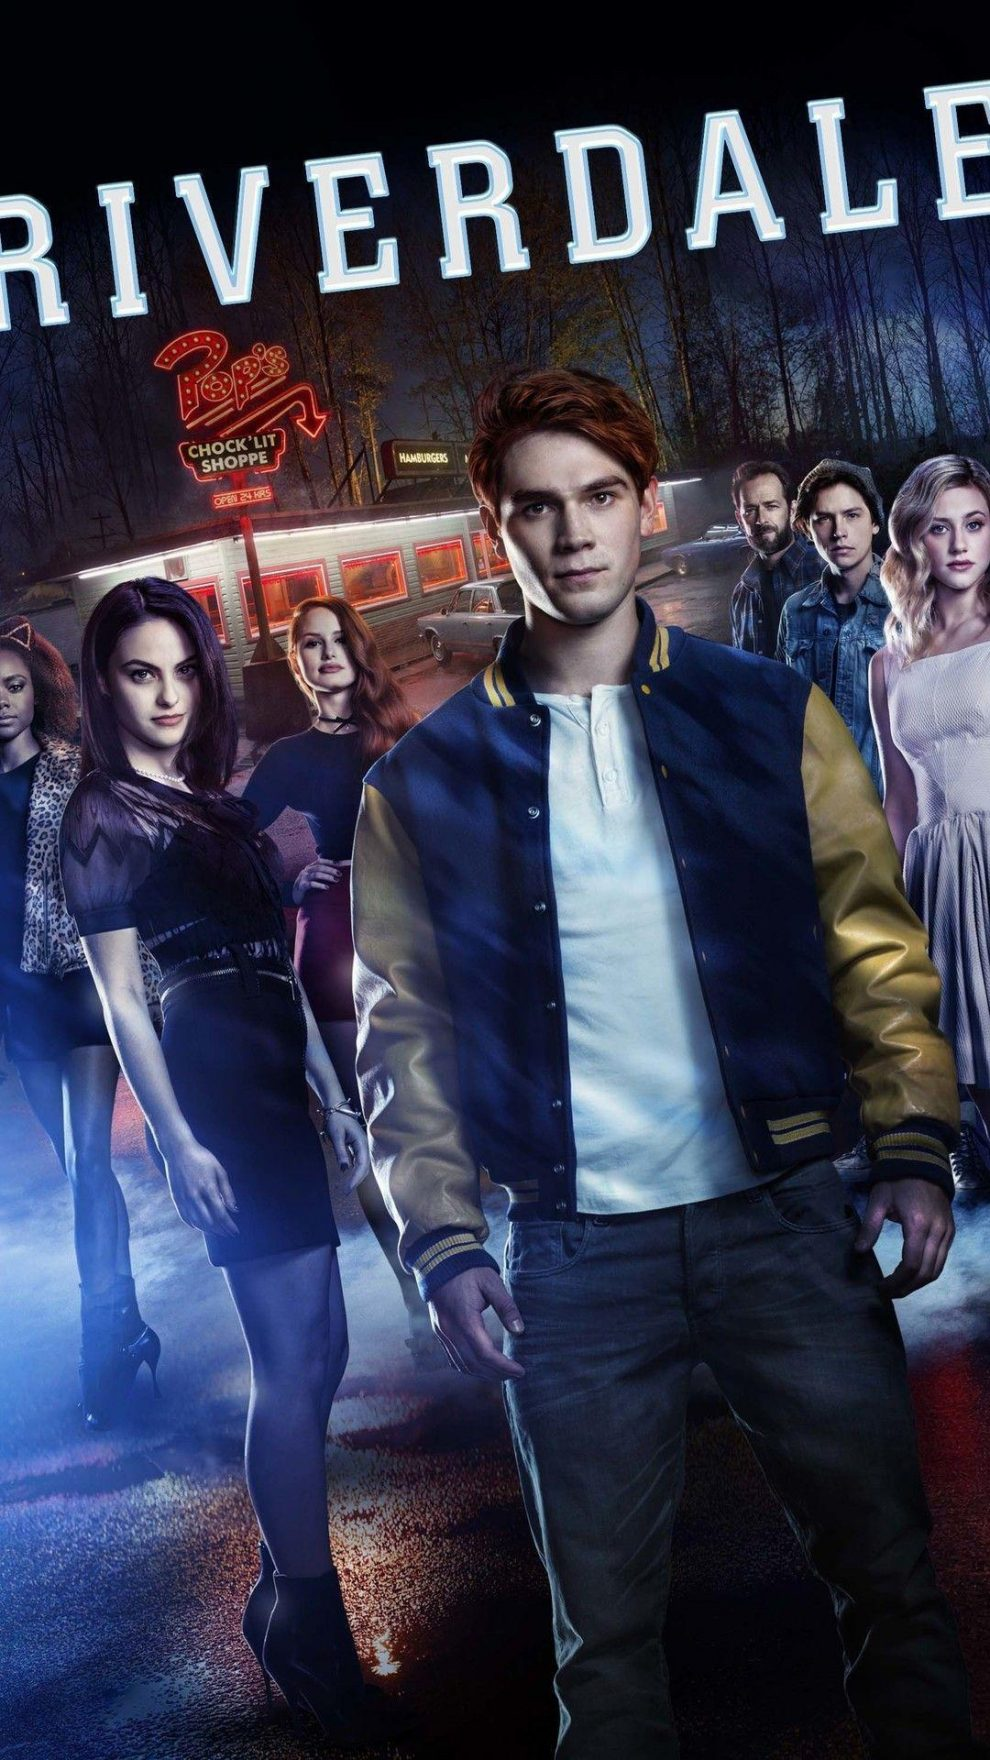 """Riverdale"" Season 5"